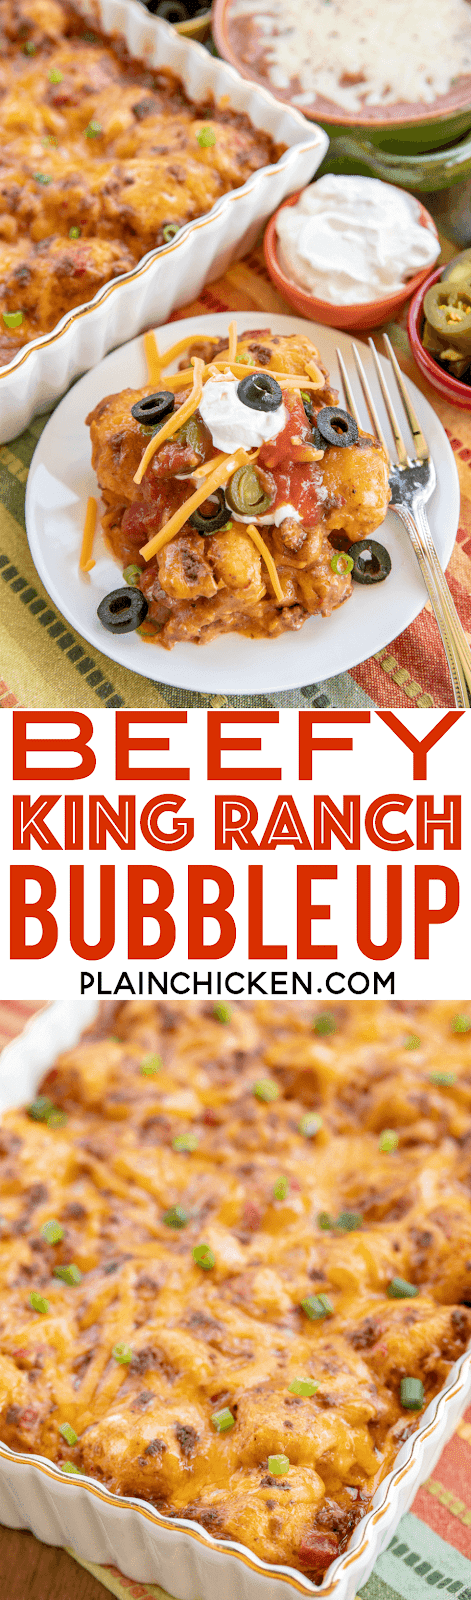 Beefy King Ranch Bubble Up - SO good!!! Ground beef, taco seasoning,  Velveeta cheese, diced tomatoes and green chiles, chicken soup tossed with chopped refrigerated biscuits and baked - use mild rotel if worried about the heat. OMG! SO easy and SO delicious! I wanted to lick my plate! #casserole #mexican #beef #taco #groundbeefrecipe